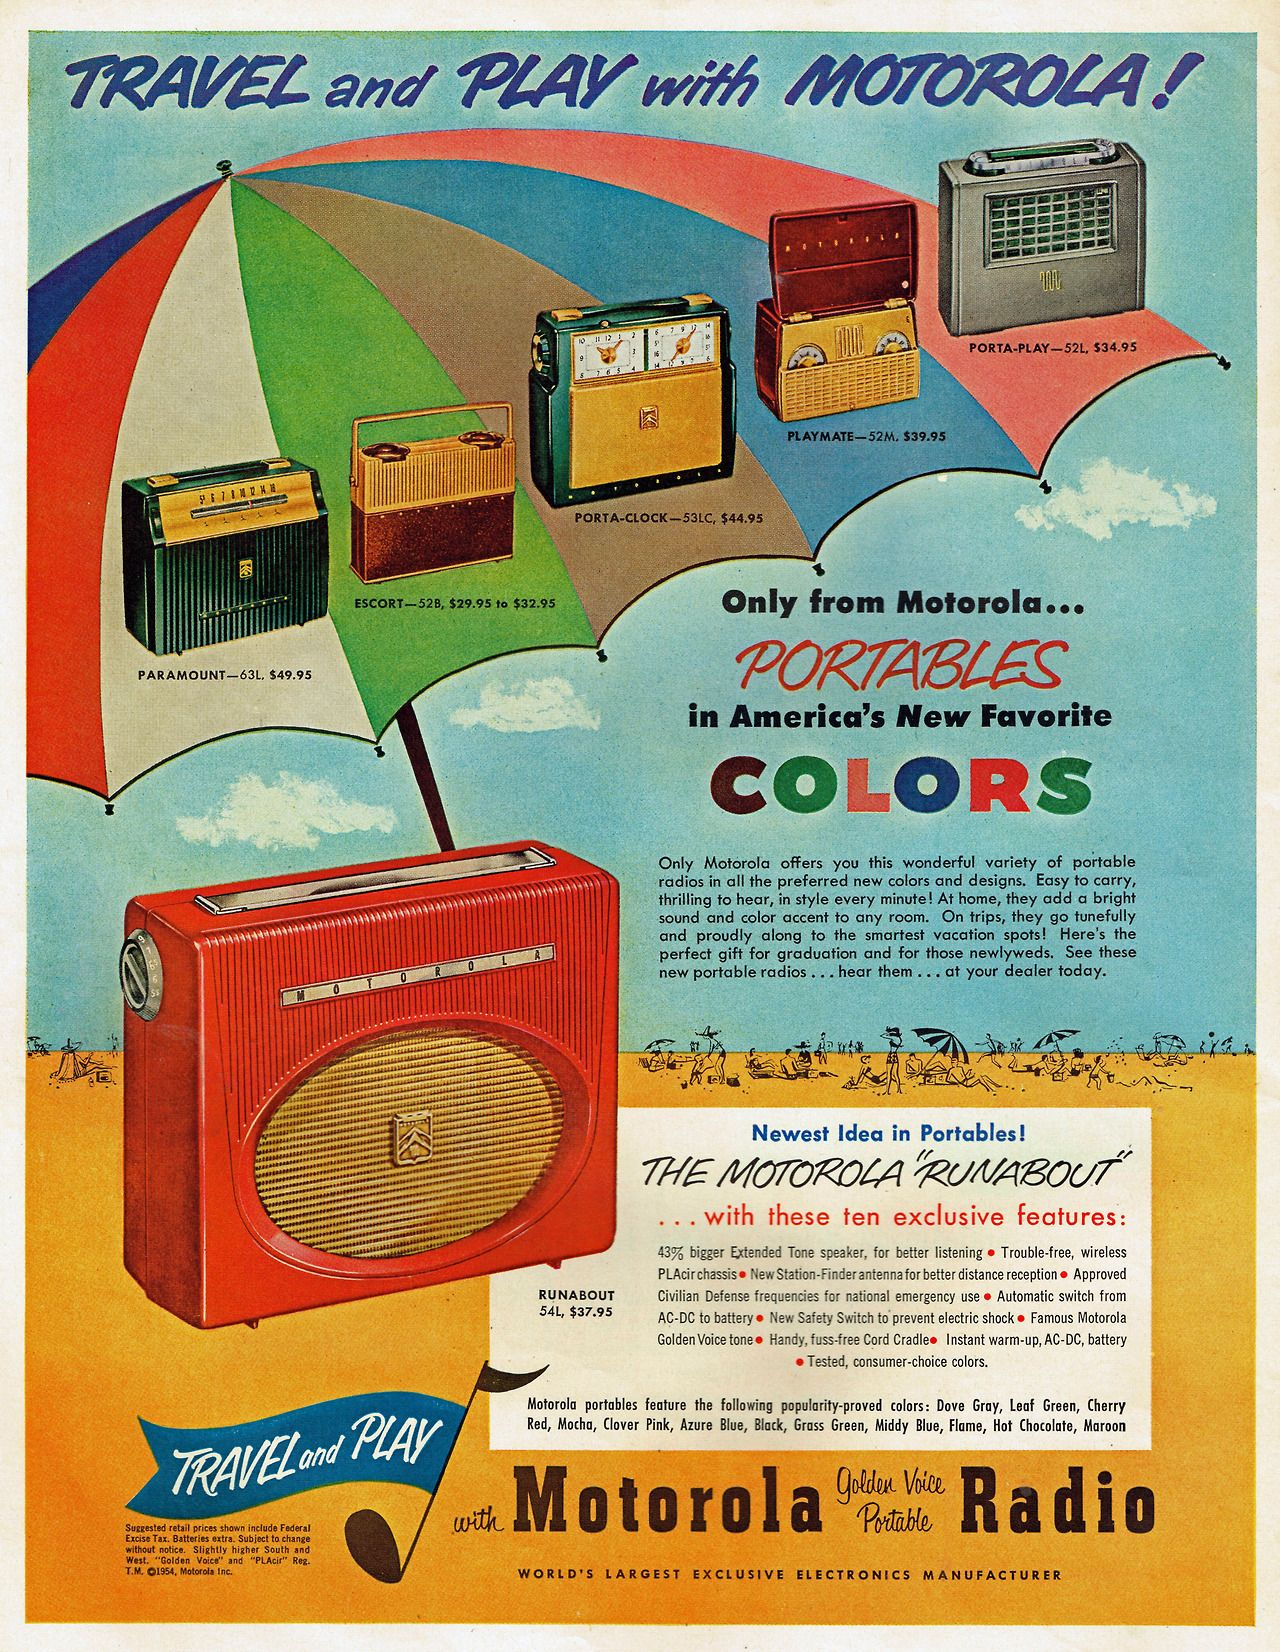 Travel and Play with Motorola Golden Voice Portable Radio, 1954.